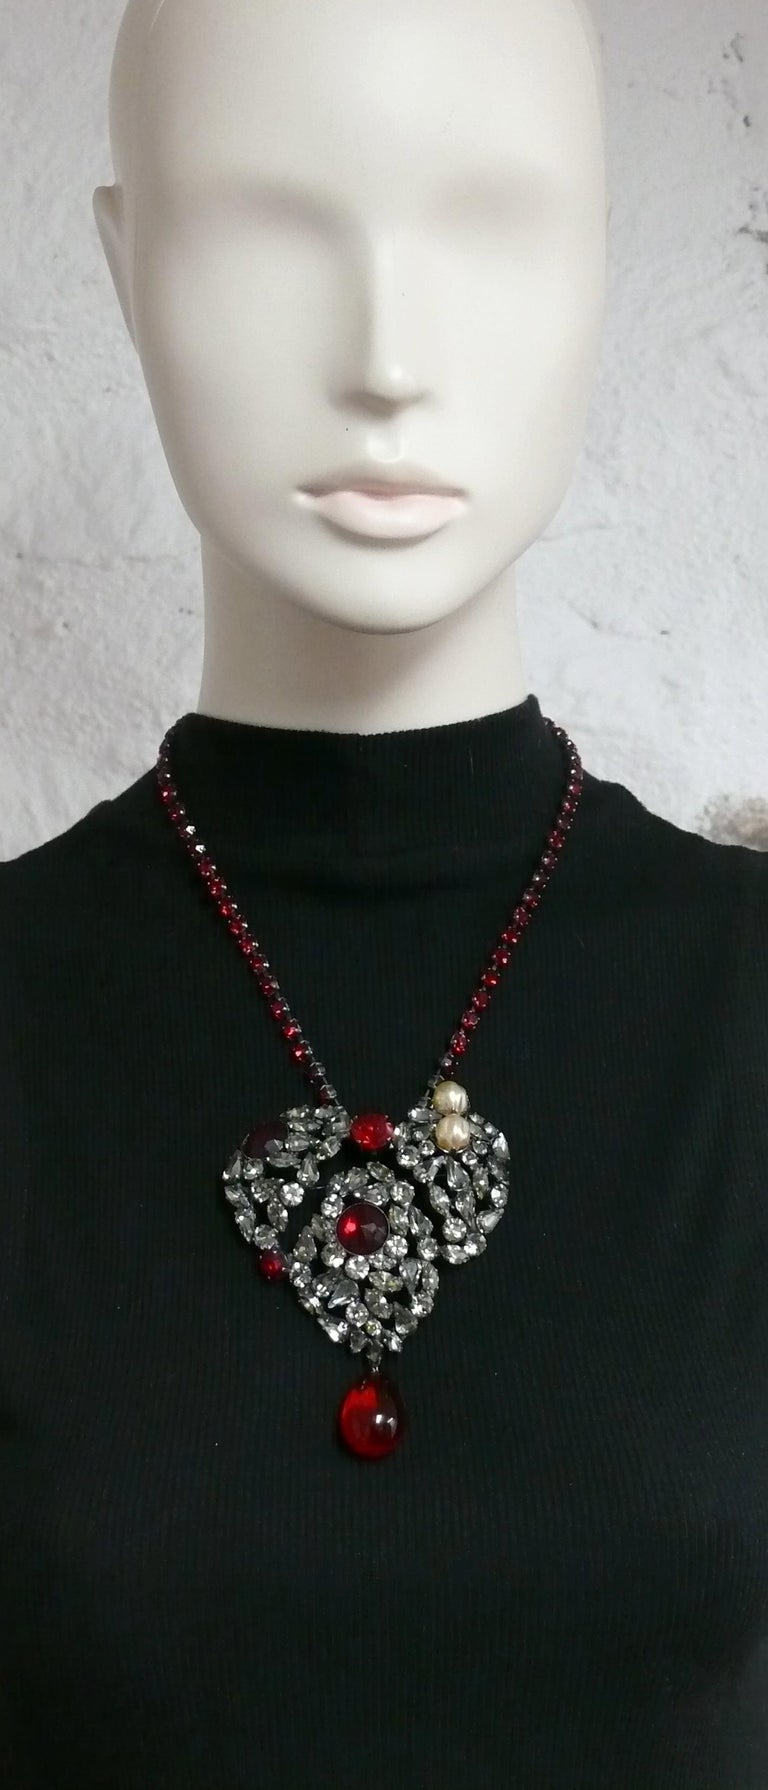 YVES SAINT LAURENT vintage massive iconic pendant necklace featuring a gun metal patina heart embellished with light grey and red crystals, faux pearls, red glass drop and a ruby rhinestone chain.  Similar model worn by LAETITIA CASTA on the catwalk